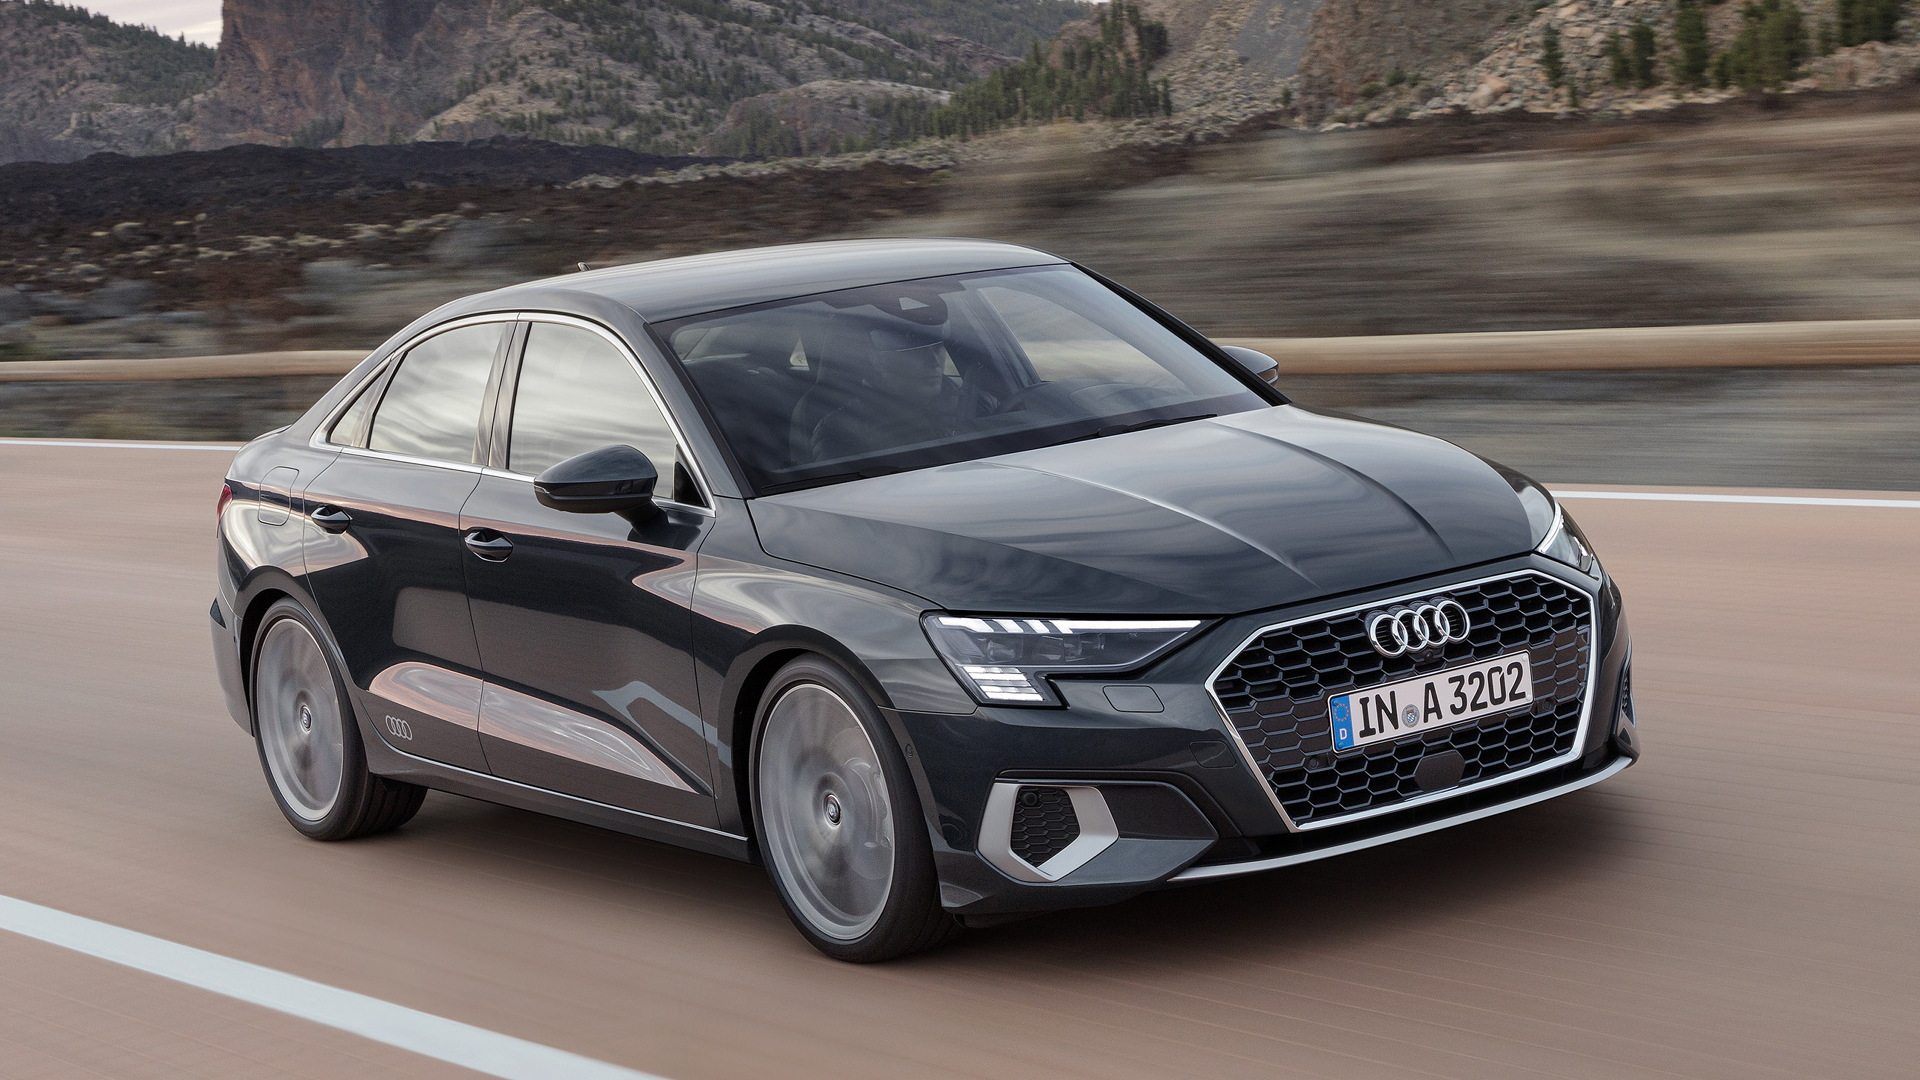 Audi A3 Sedan Debuts With Fresh Design, New Technology